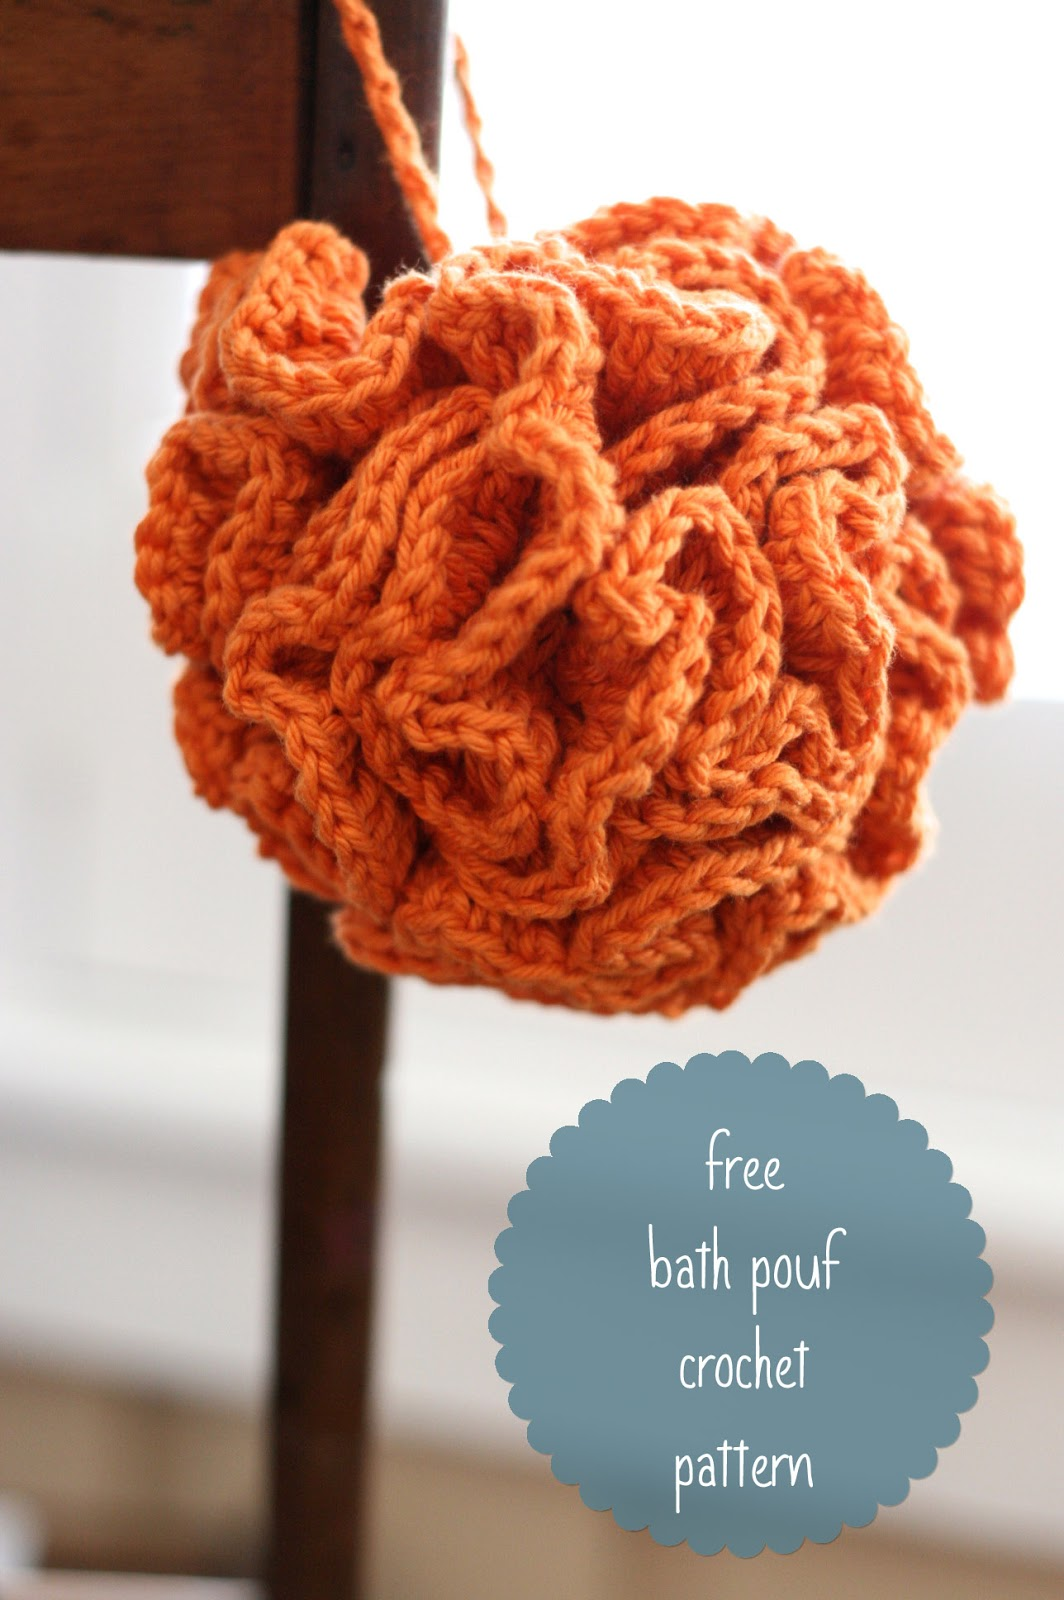 Free Crochet Patterns You Can Sell : Database Error